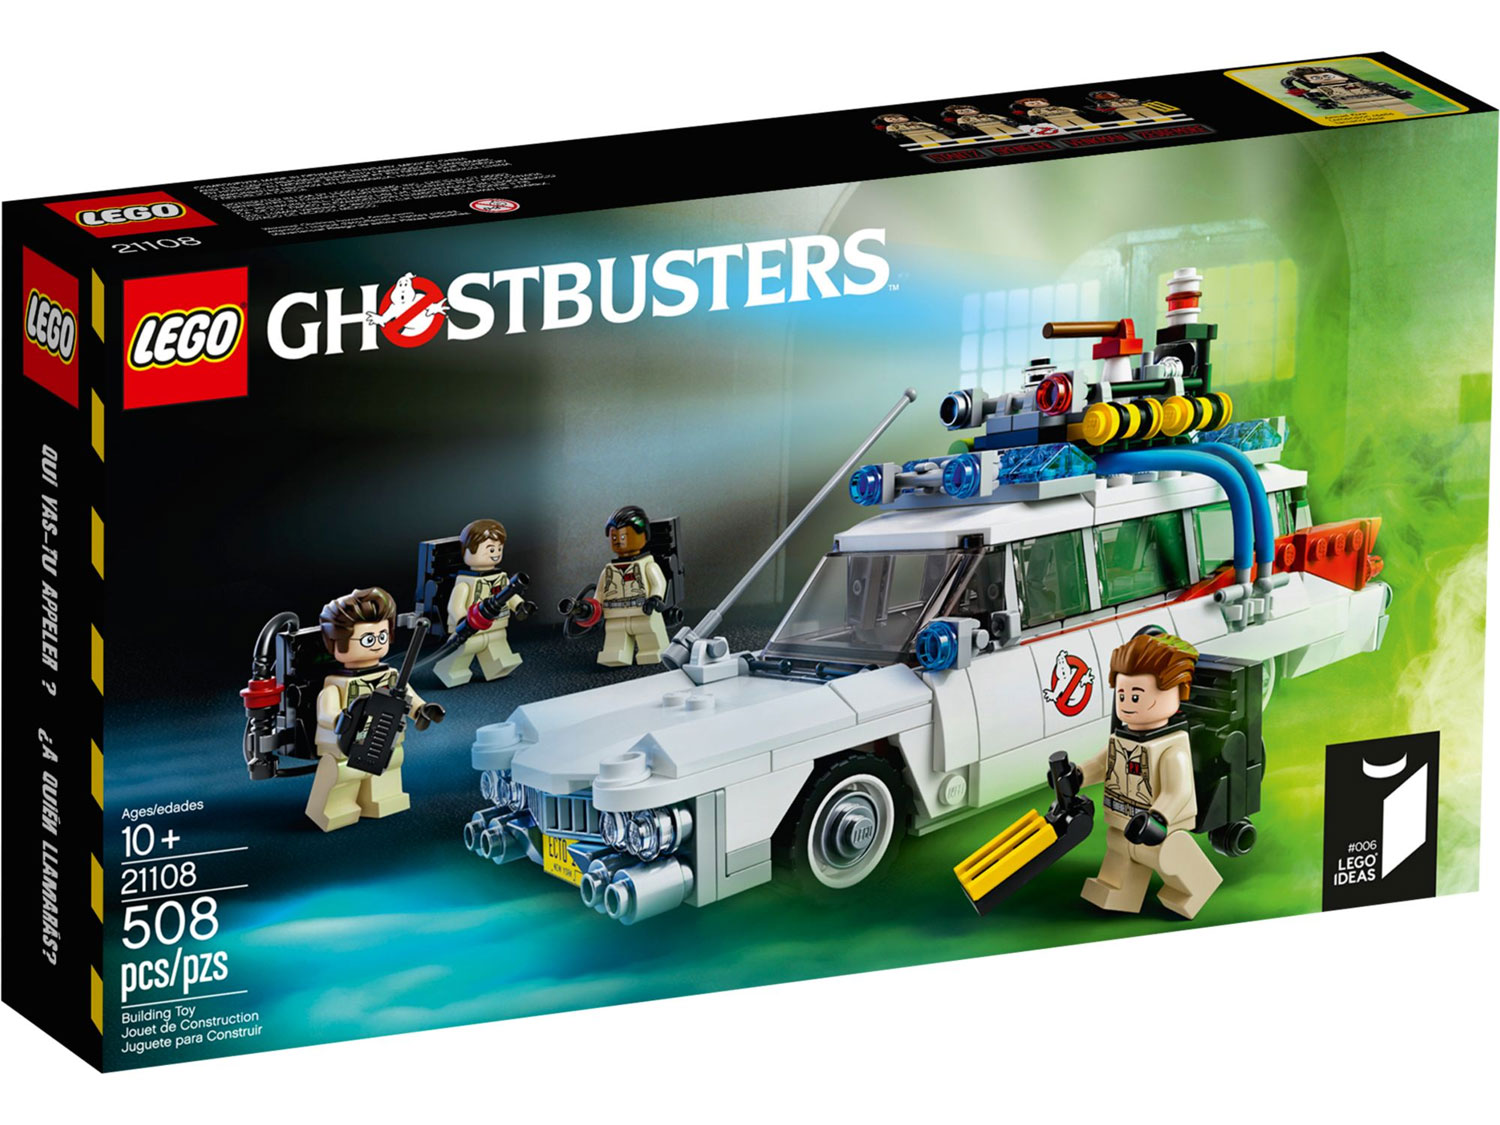 Lego 21108 lego exclusives ghostbusters ecto 1 for Lago shop online